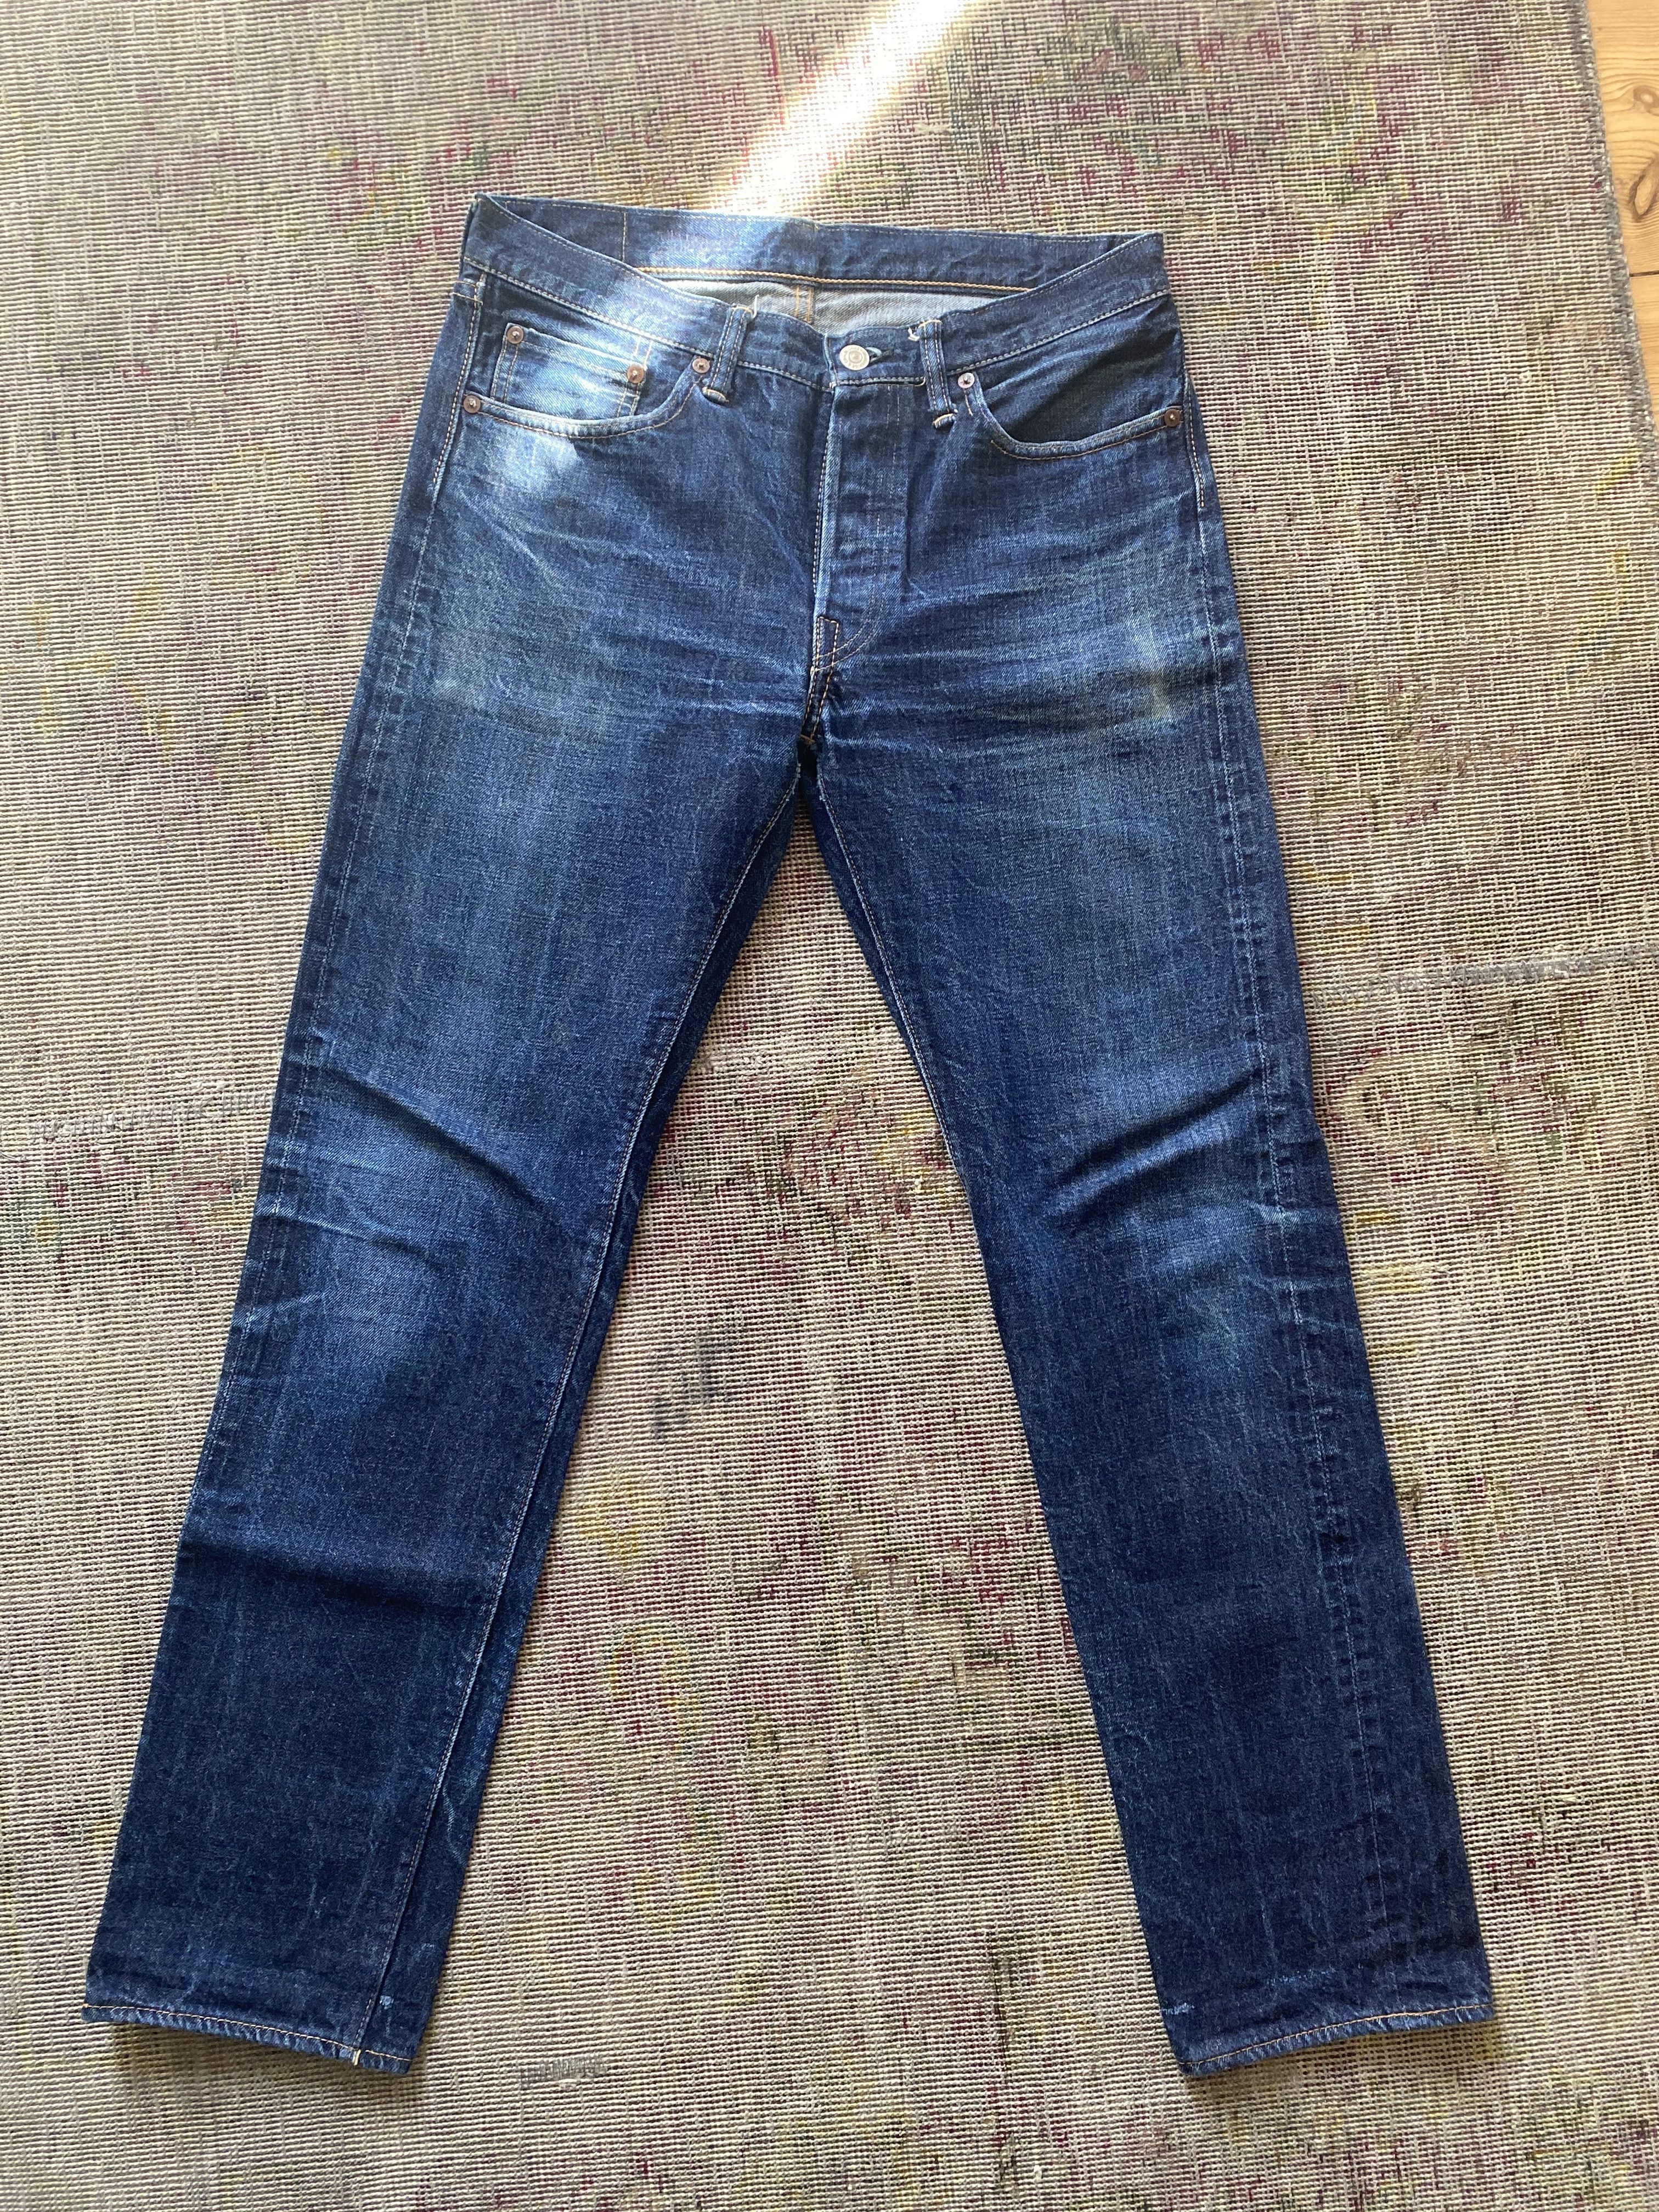 Warehouse 900s size 31